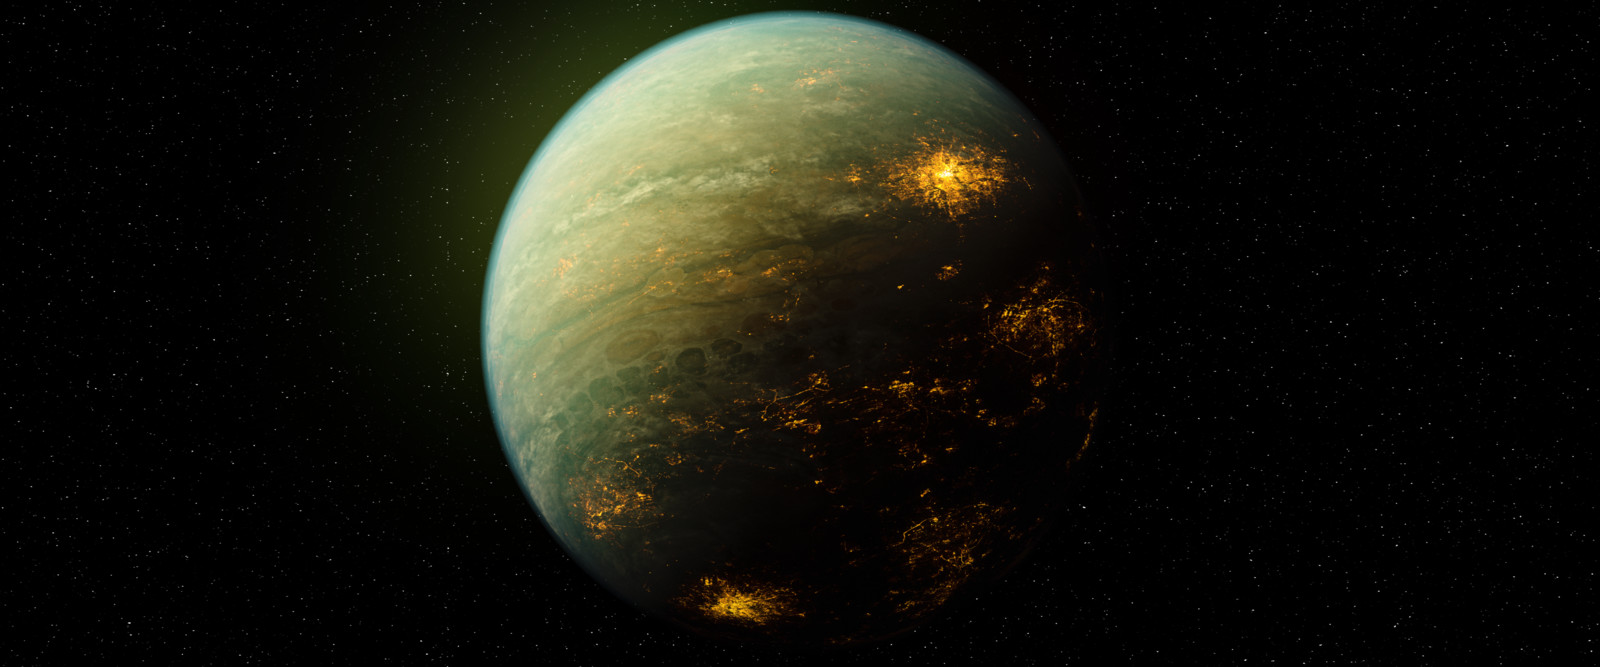 I took some time today to generate several quick planets. Rendered in Octane, but not using the Planetary Environment Node (PEN), as they are actual 3D geometry, and can therefor be placed anywhere in the scene, and are not dependent on the limitations im